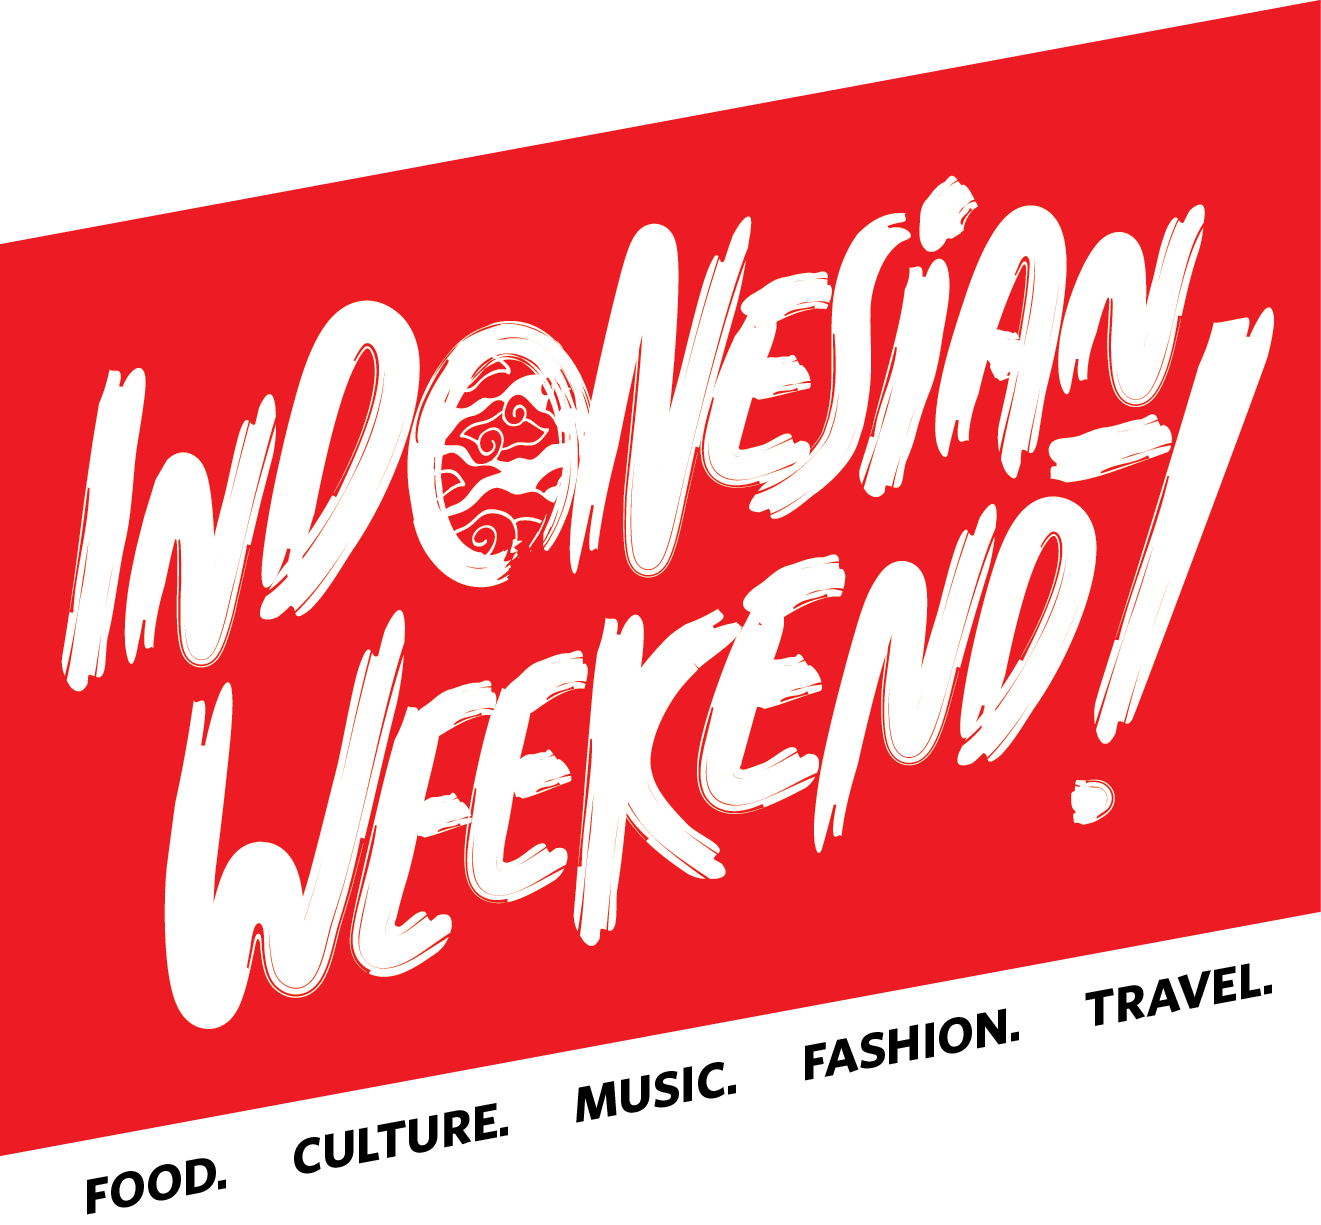 Indonesian Weekend